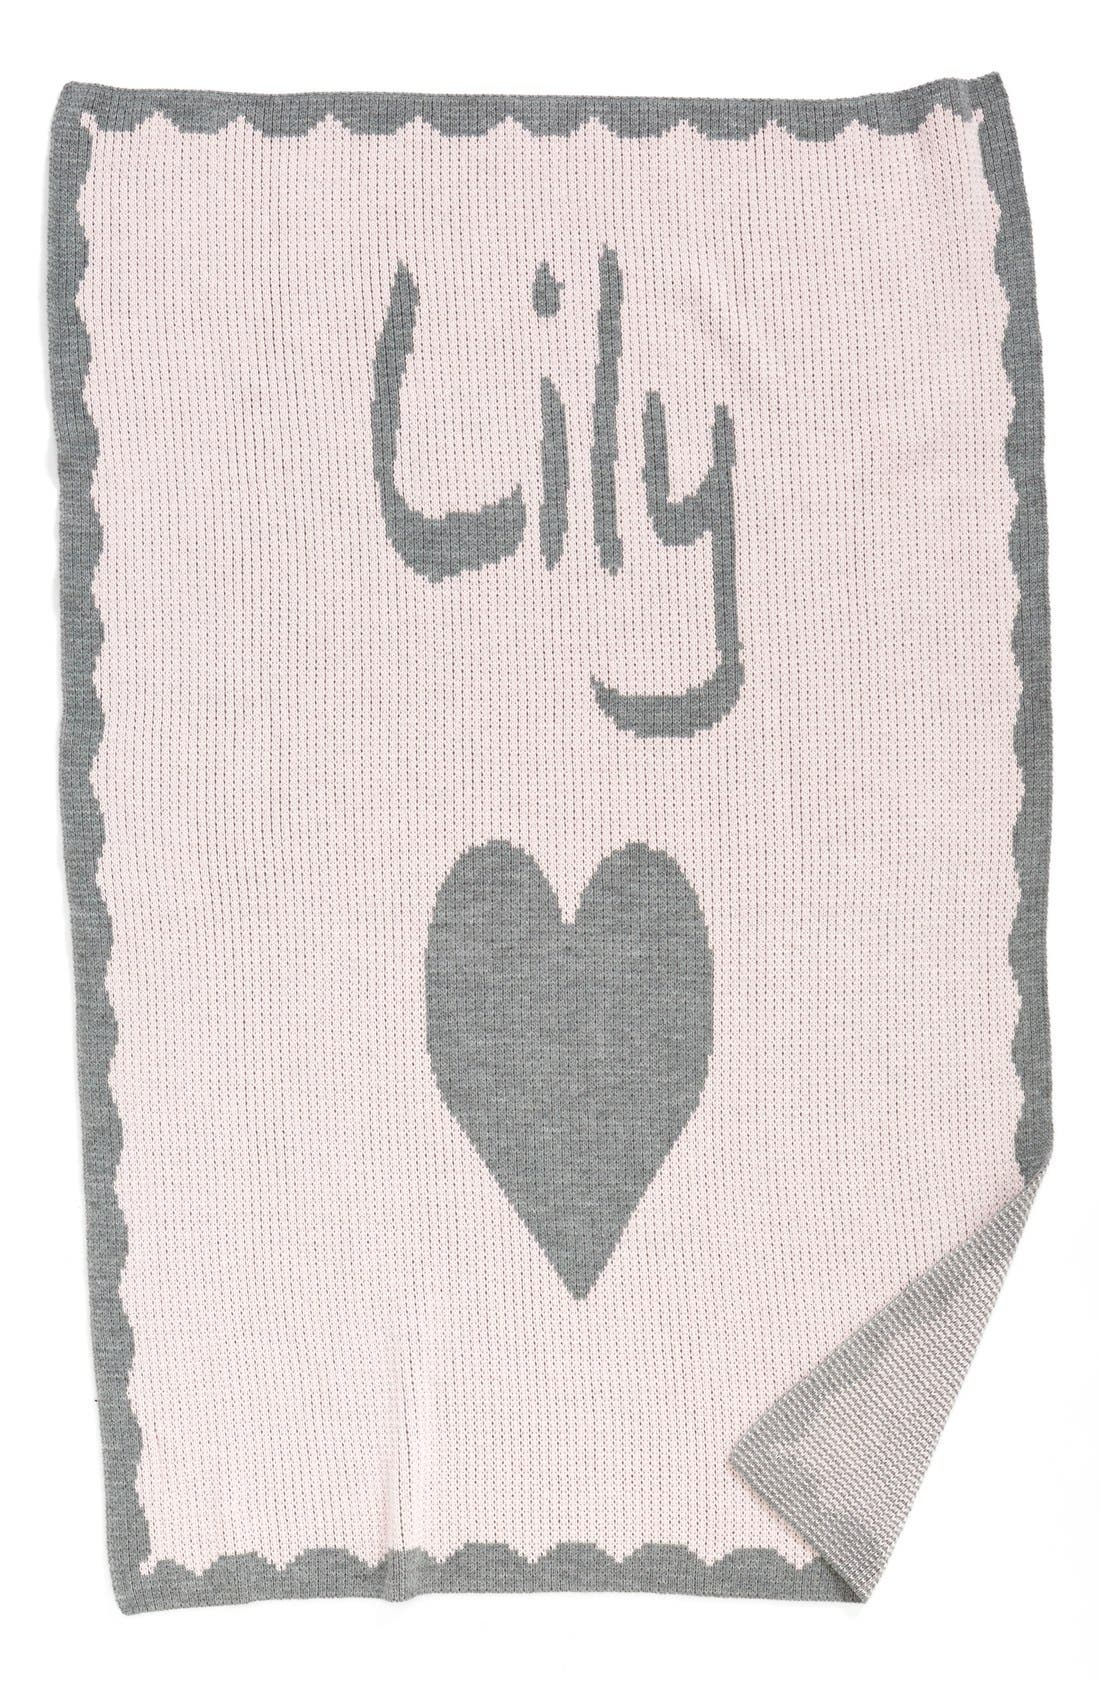 'Heart' Personalized Crib Blanket,                             Main thumbnail 1, color,                             PINK